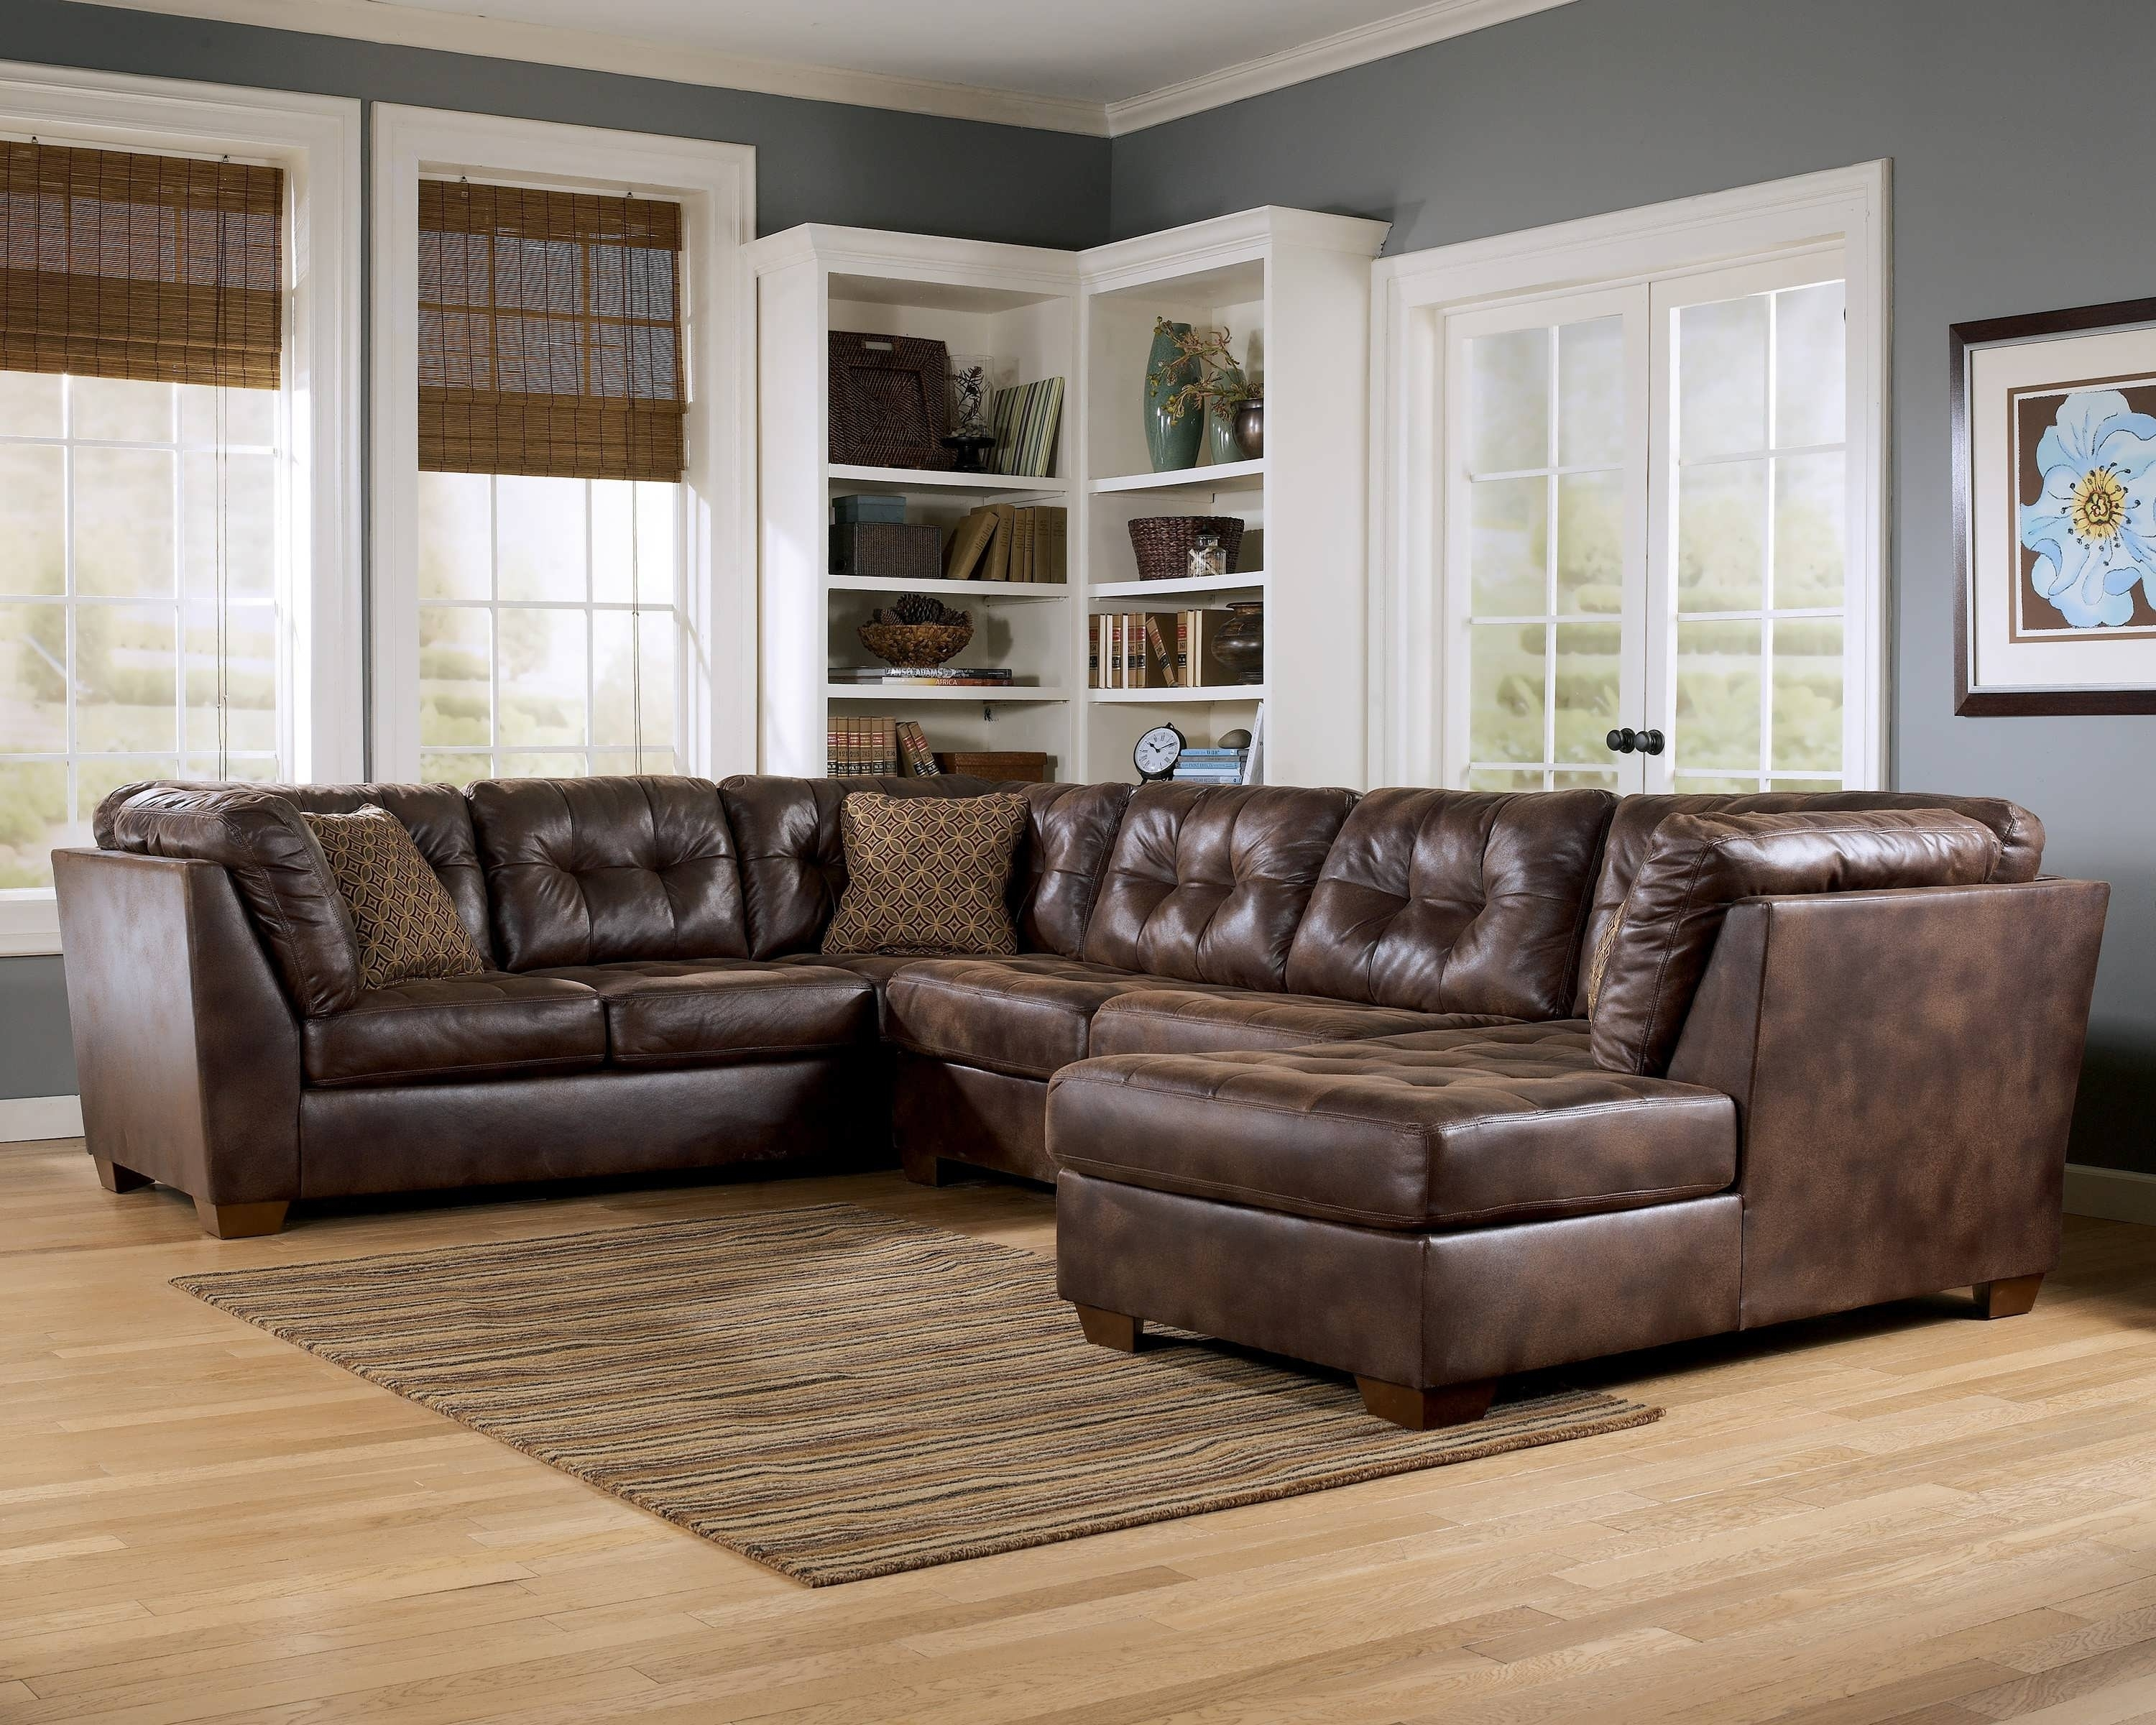 Sofa Leather Sectional Sofas Collection Of Brown Black Couch For In Memphis Tn Sectional Sofas (View 3 of 10)